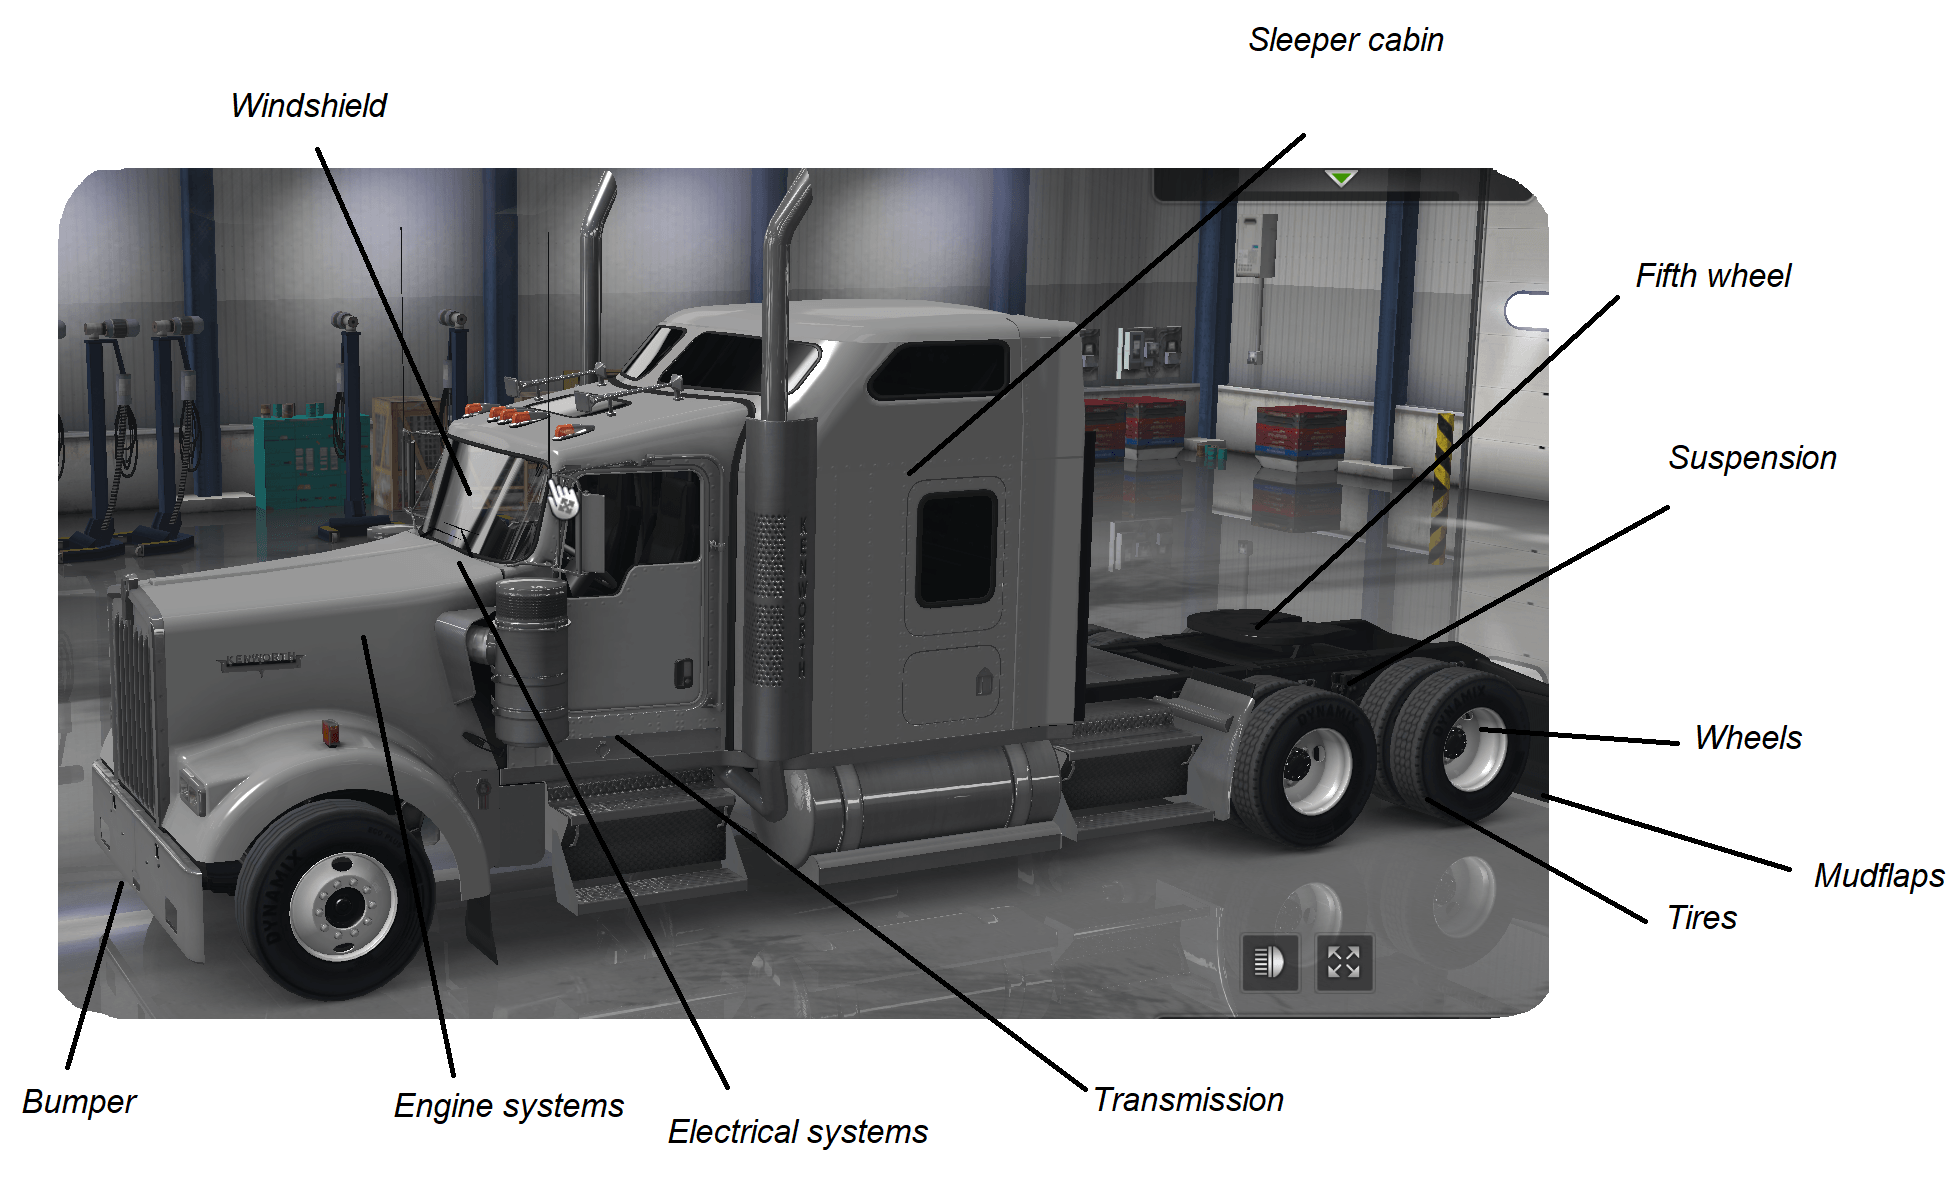 parts of a semi truck diagram truckfreighter com rh truckfreighter com semi truck engine parts diagram Semi Truck Pre-Trip Inspection Diagram